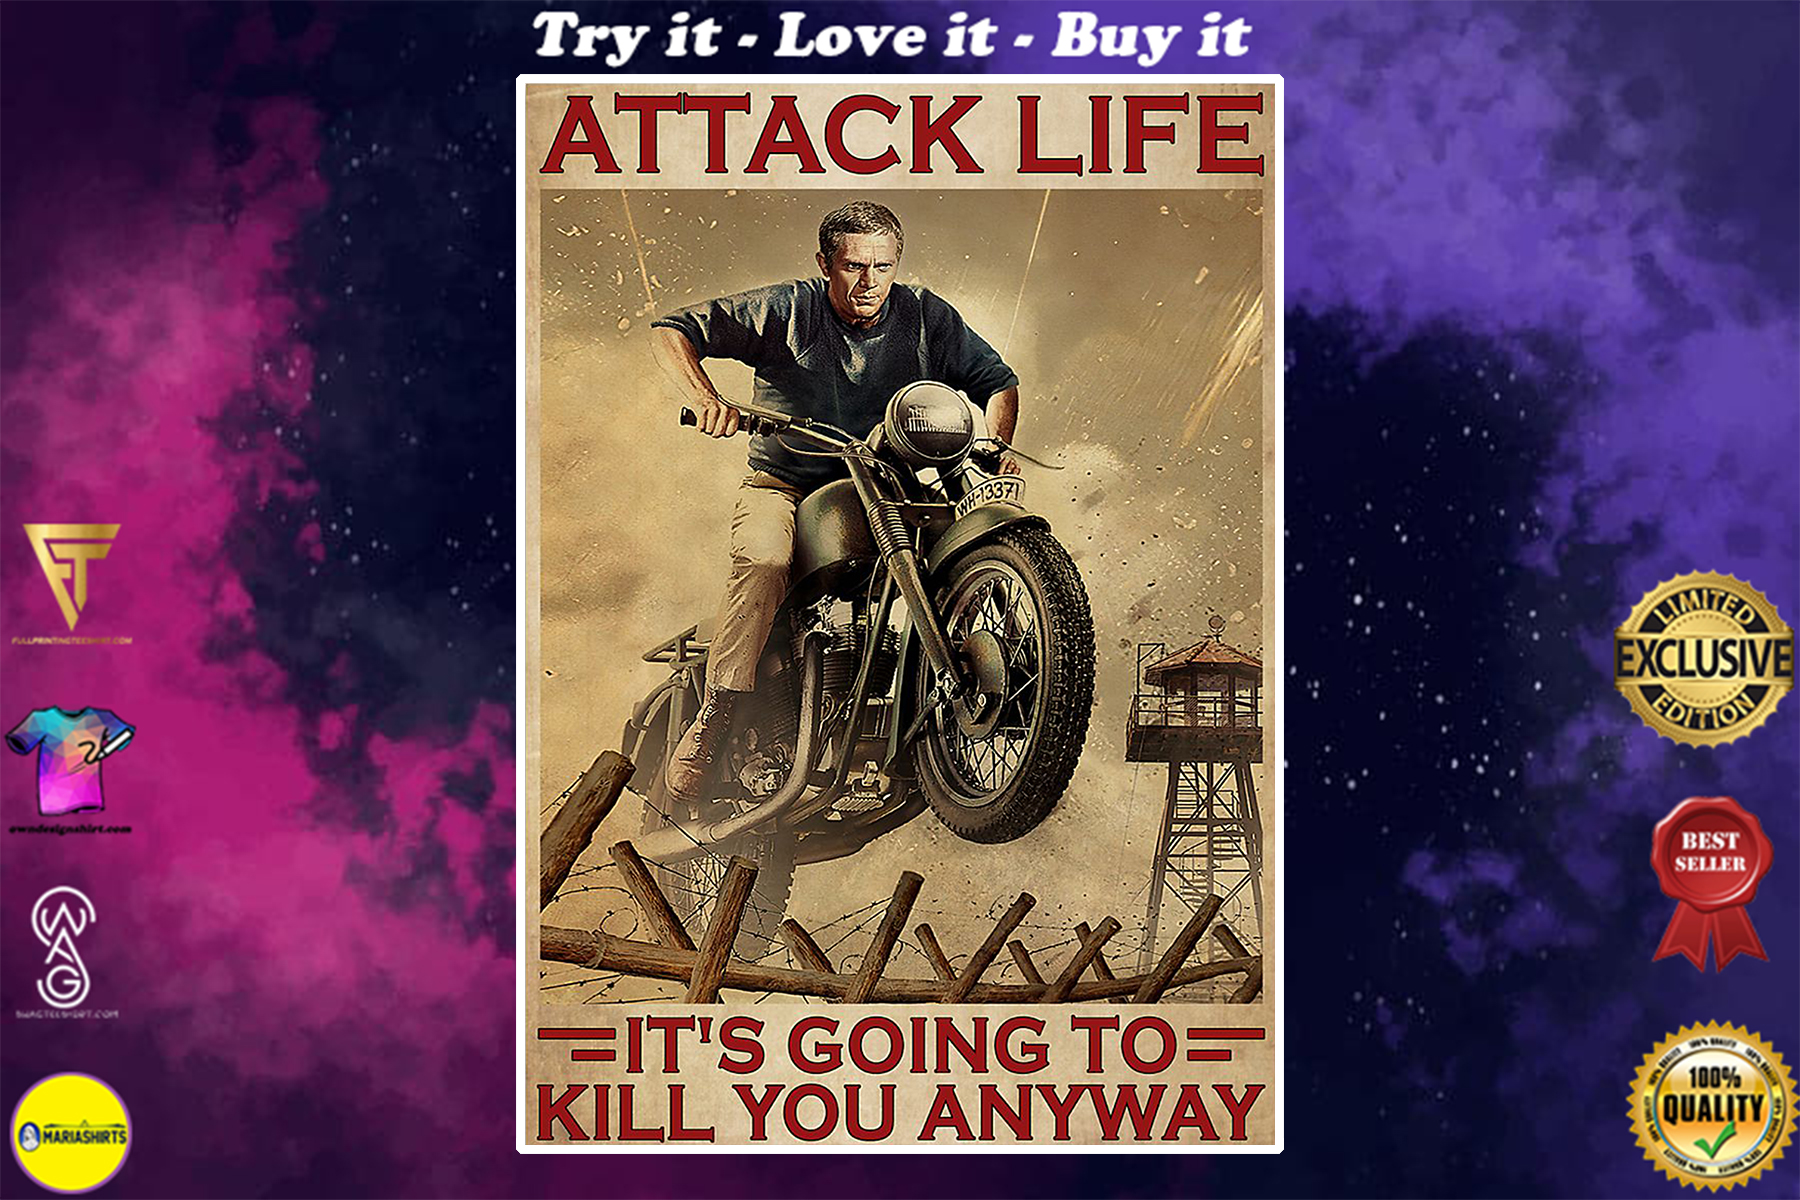 attack life its going to kill you anyway motocross retro poster